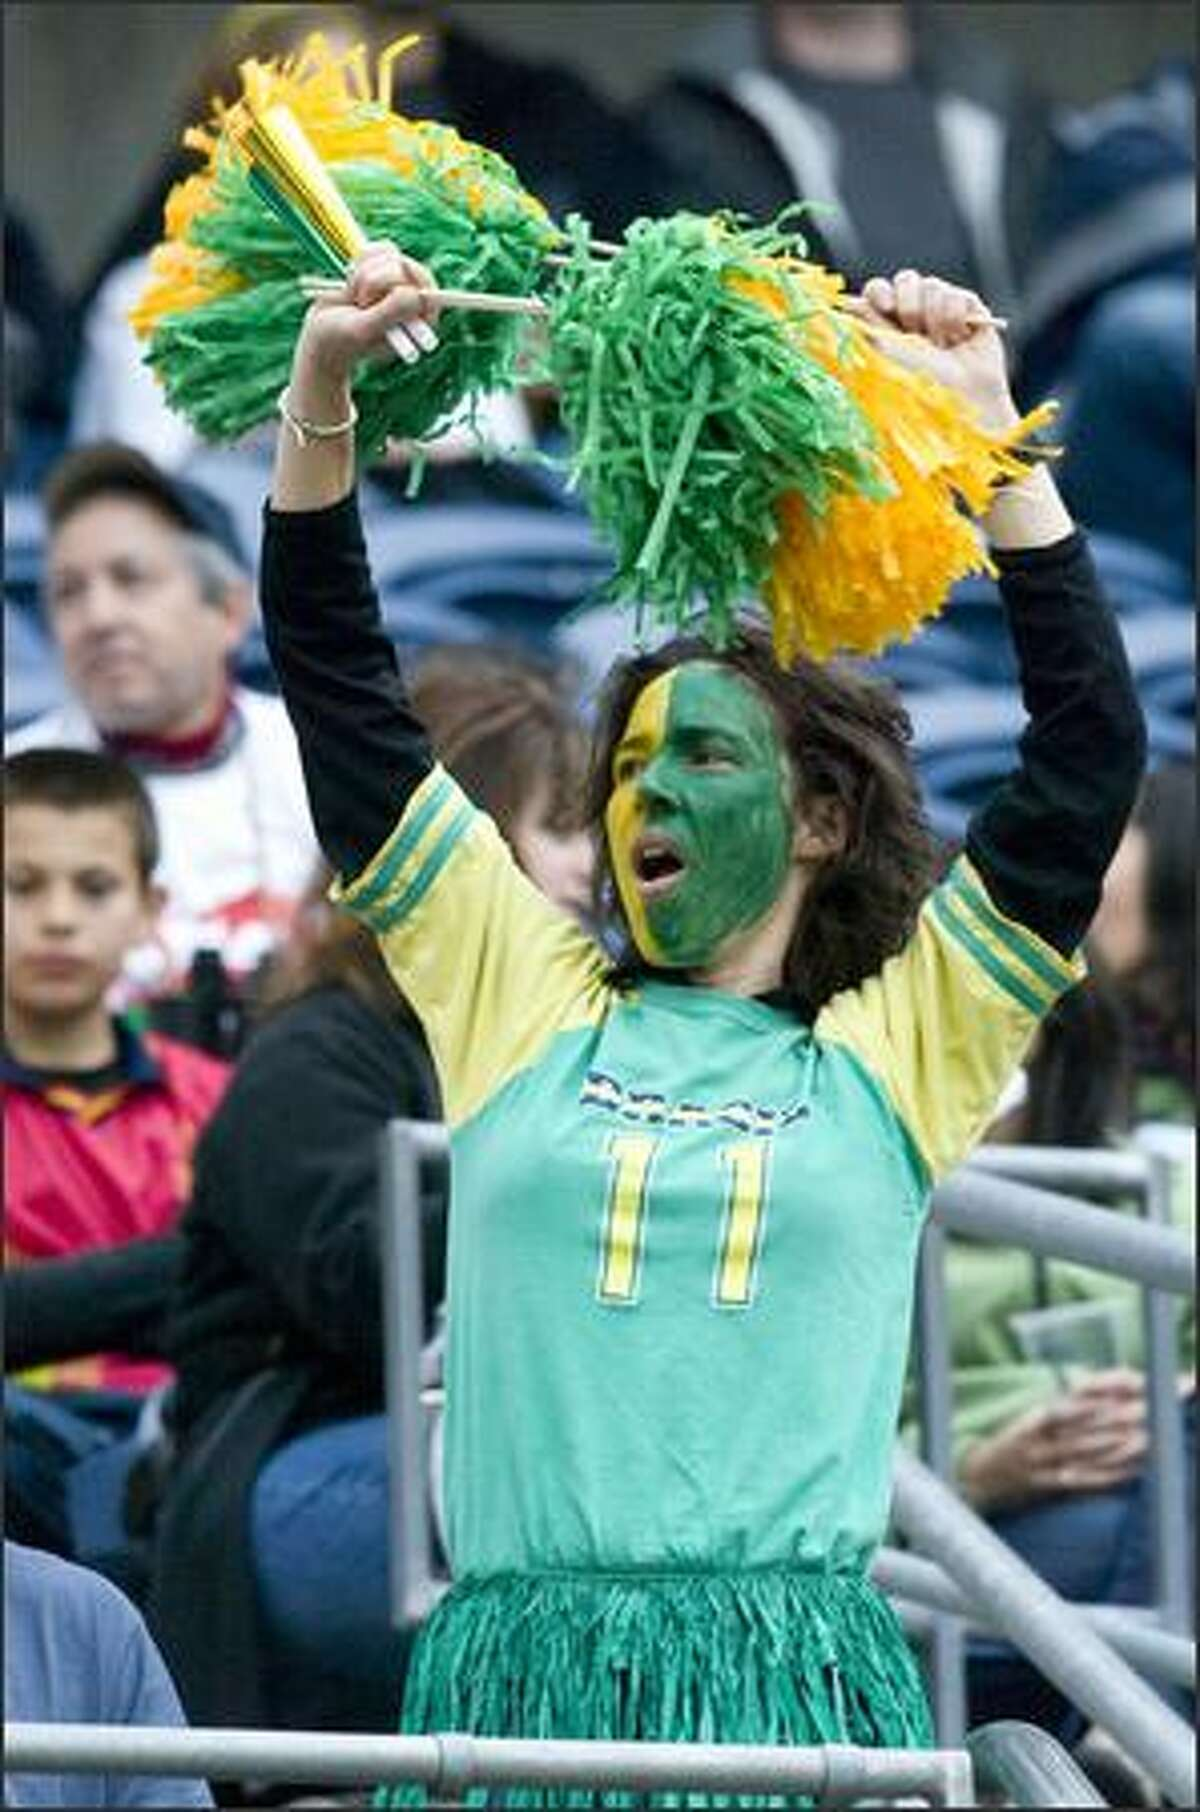 A Brazil fan cheers as she dances for Robinho (11).